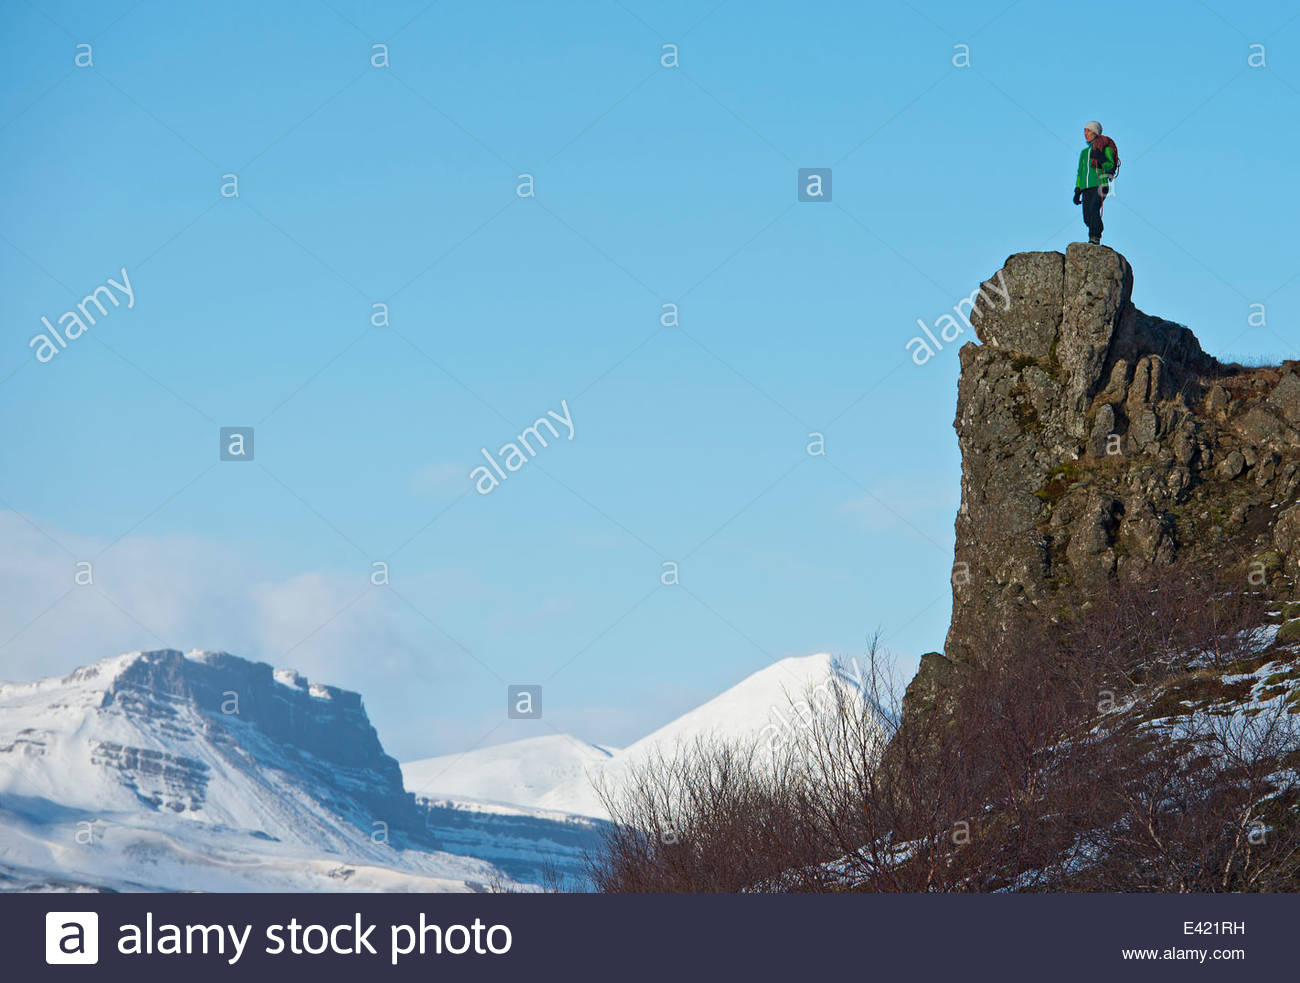 Climber on top of cliff, Baulur, West Iceland - Stock Image